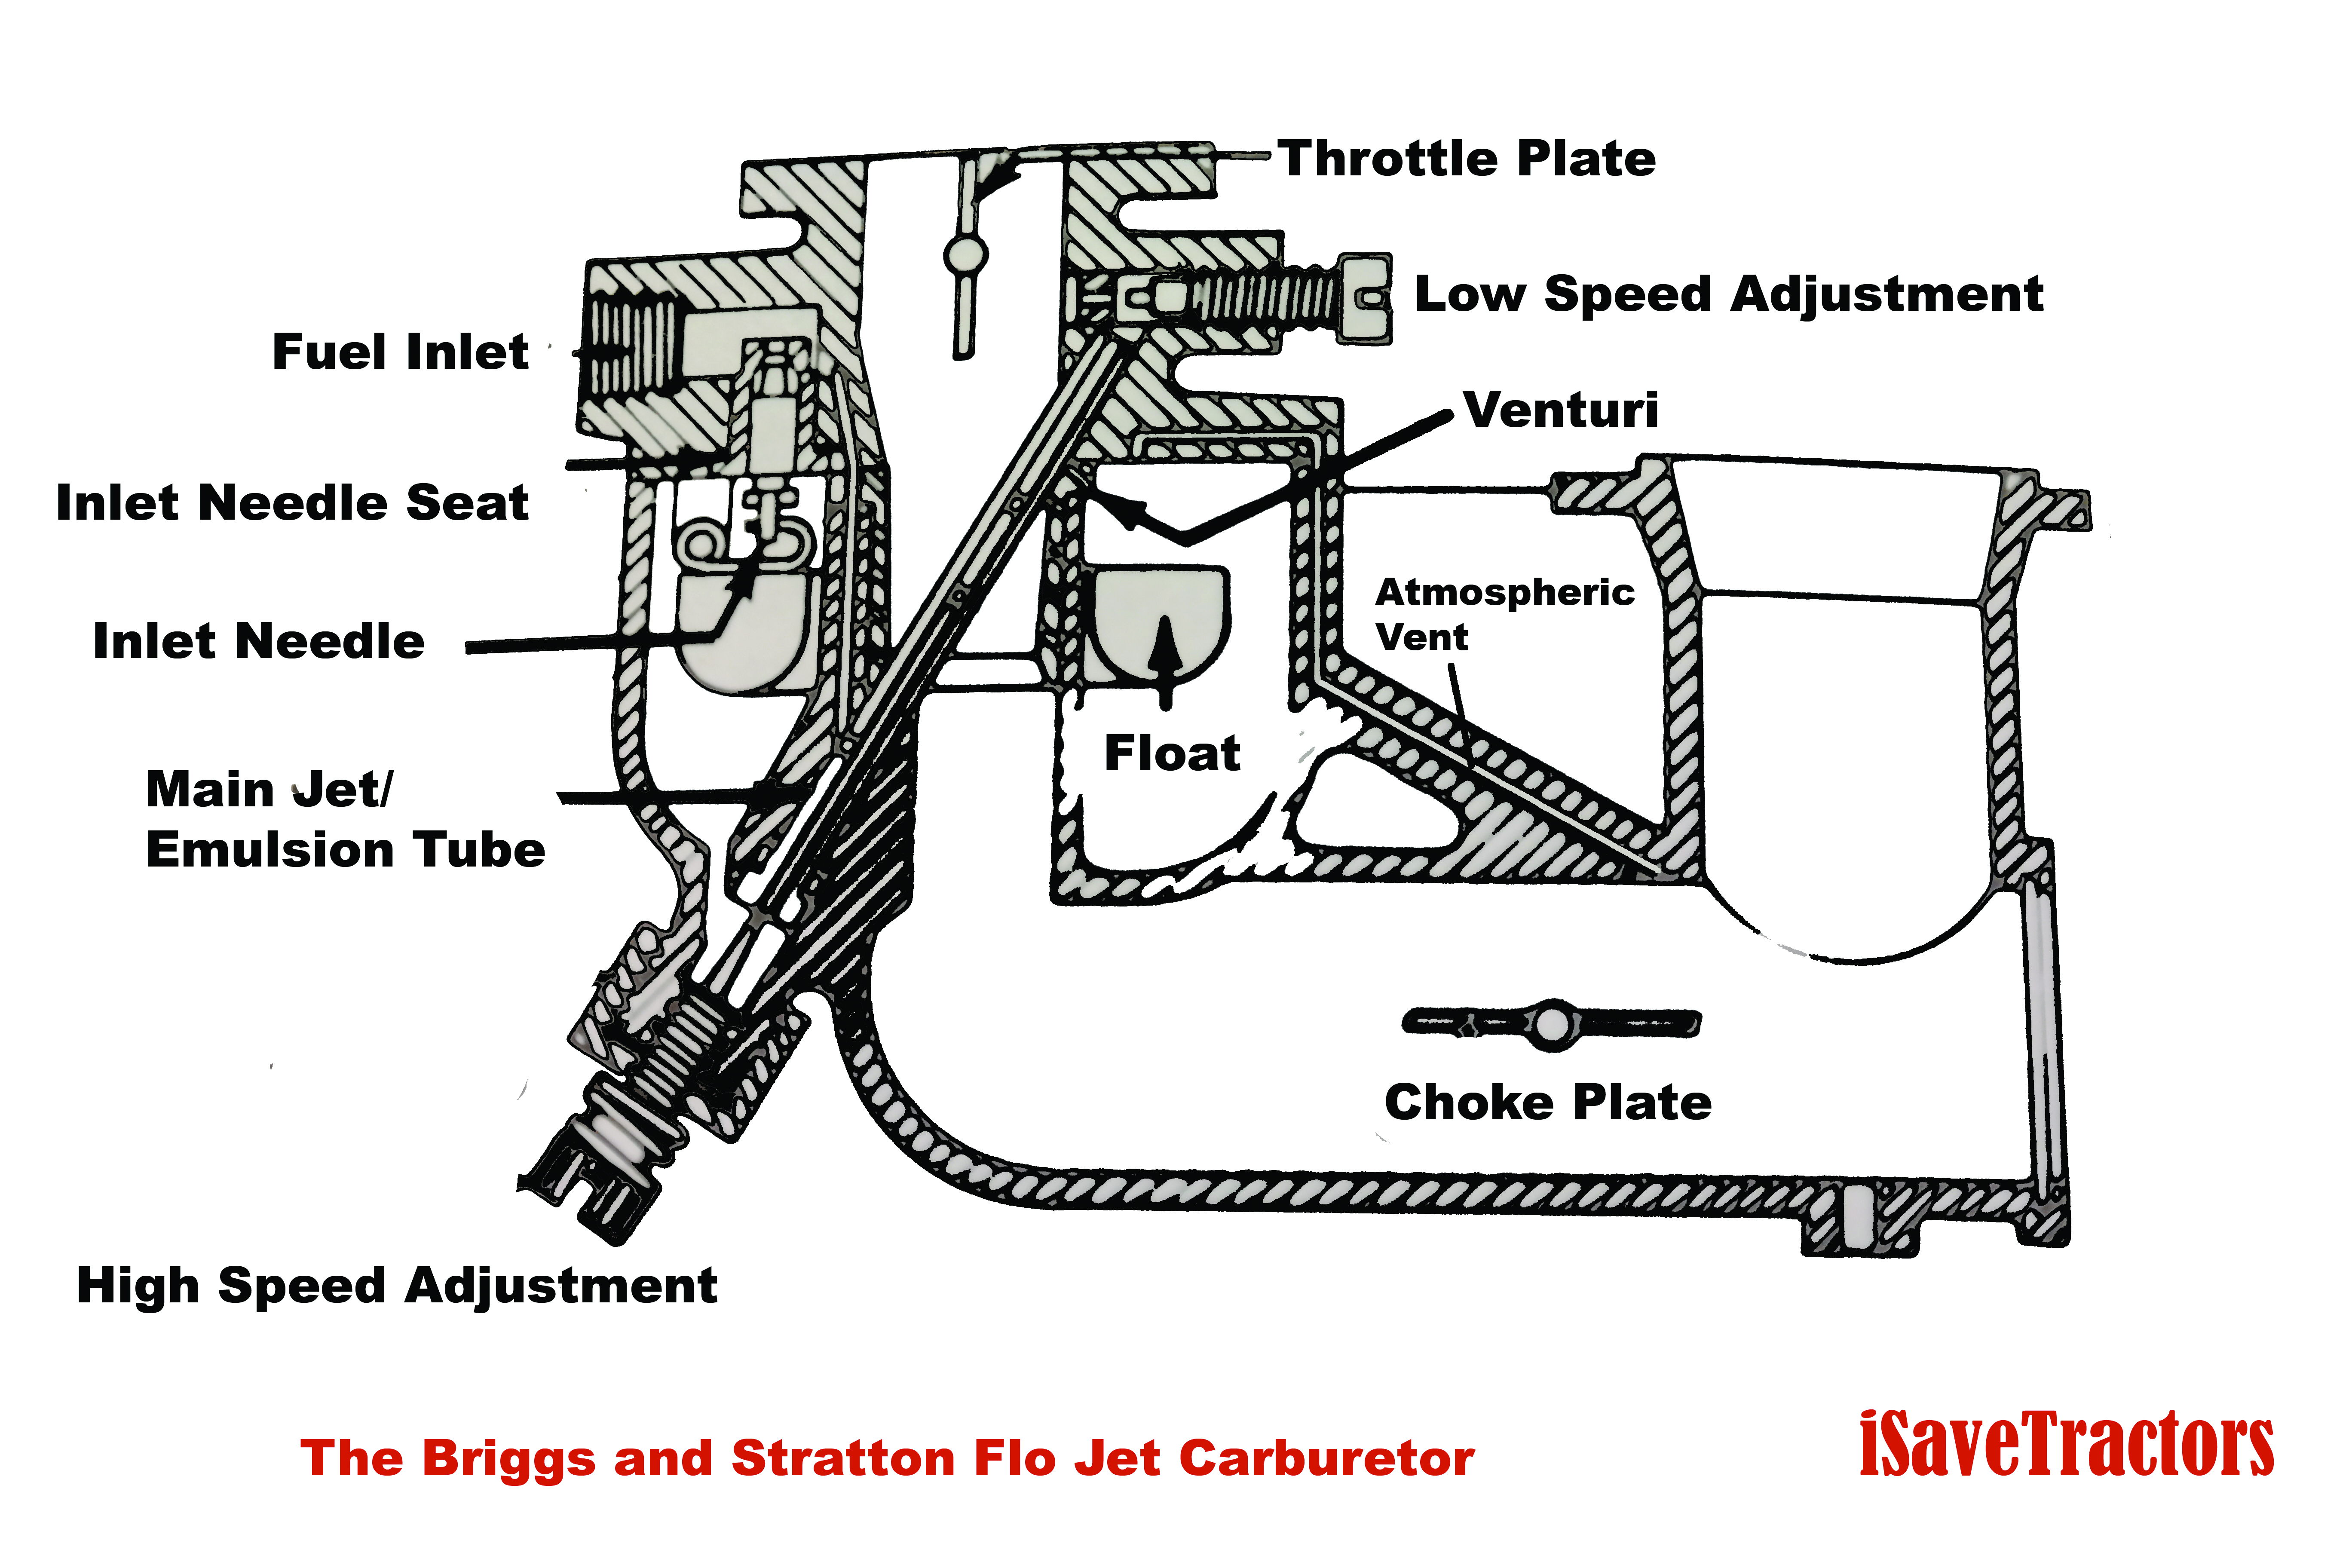 5Hp Briggs And Stratton Carburetor Diagram Briggs And Stratton Carb Adjustment Diagram Meta Wiring Diagrams